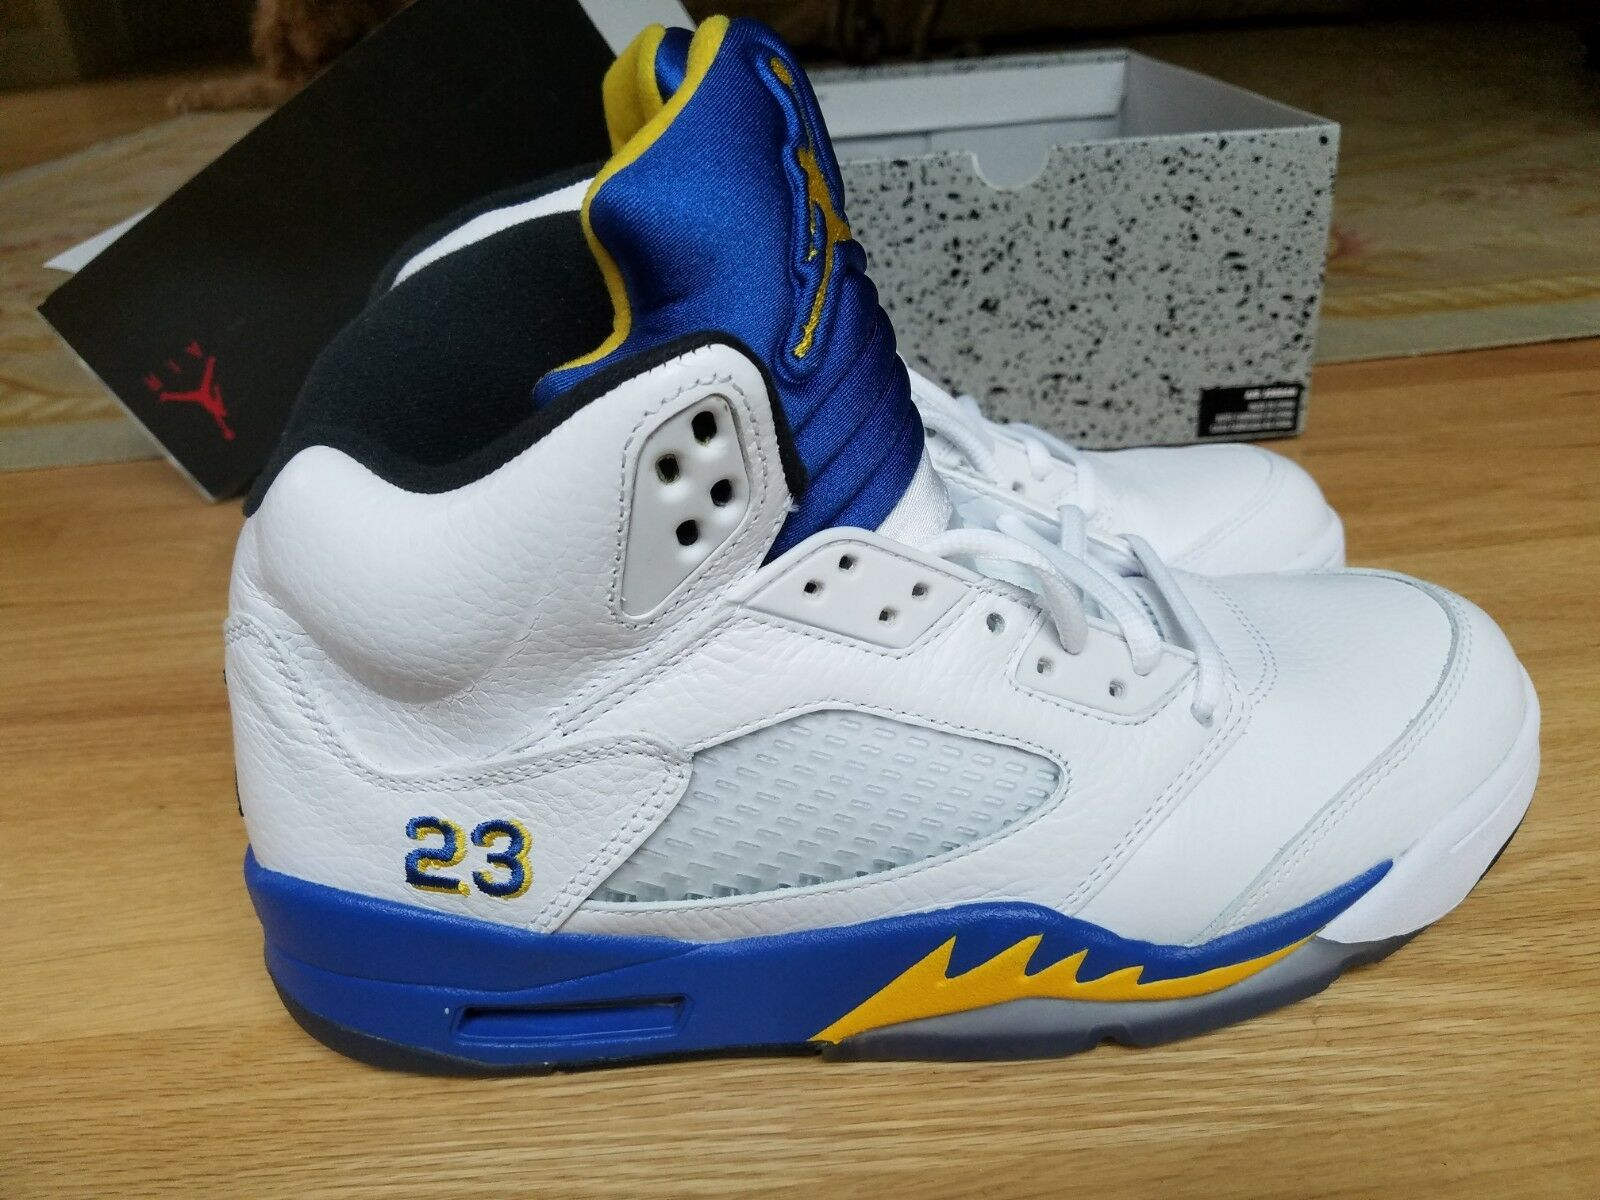 Nike Air Jordan V 5 Laney  Sz. 9 - Retro WHITE ROYAL blueE MAIZE BLACK 136027-189